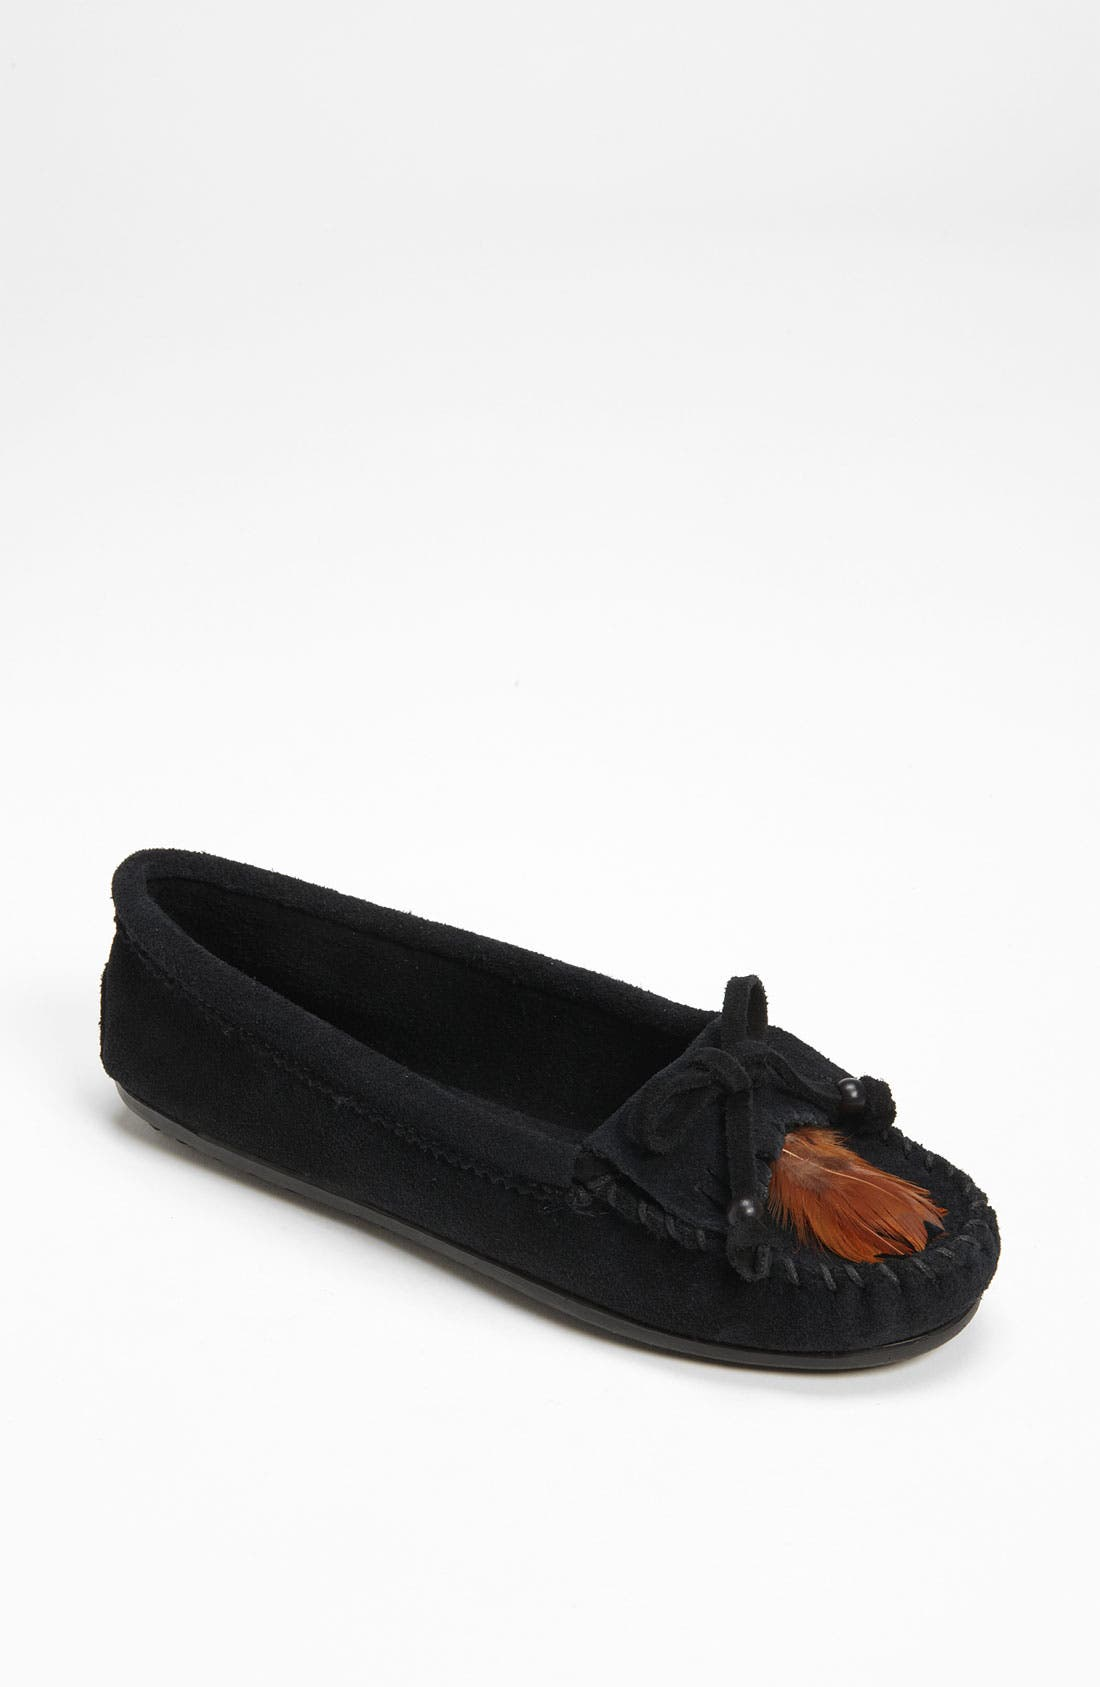 Alternate Image 1 Selected - Minnetonka 'Feather' Moccasin (Regular Retail Price: $48.95)